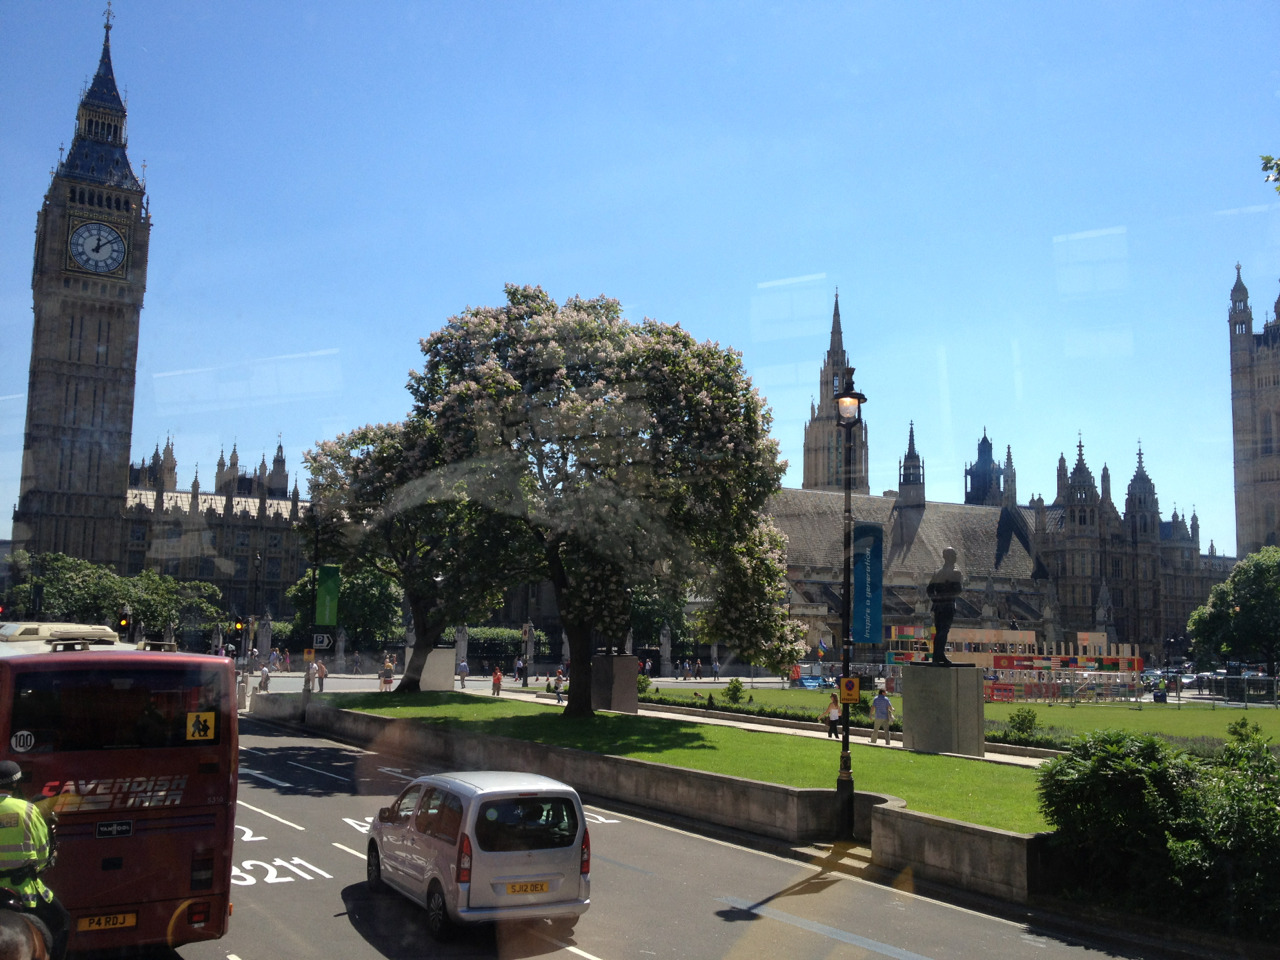 london - sunny and warm in london today, hopefully it will last all through the olympics